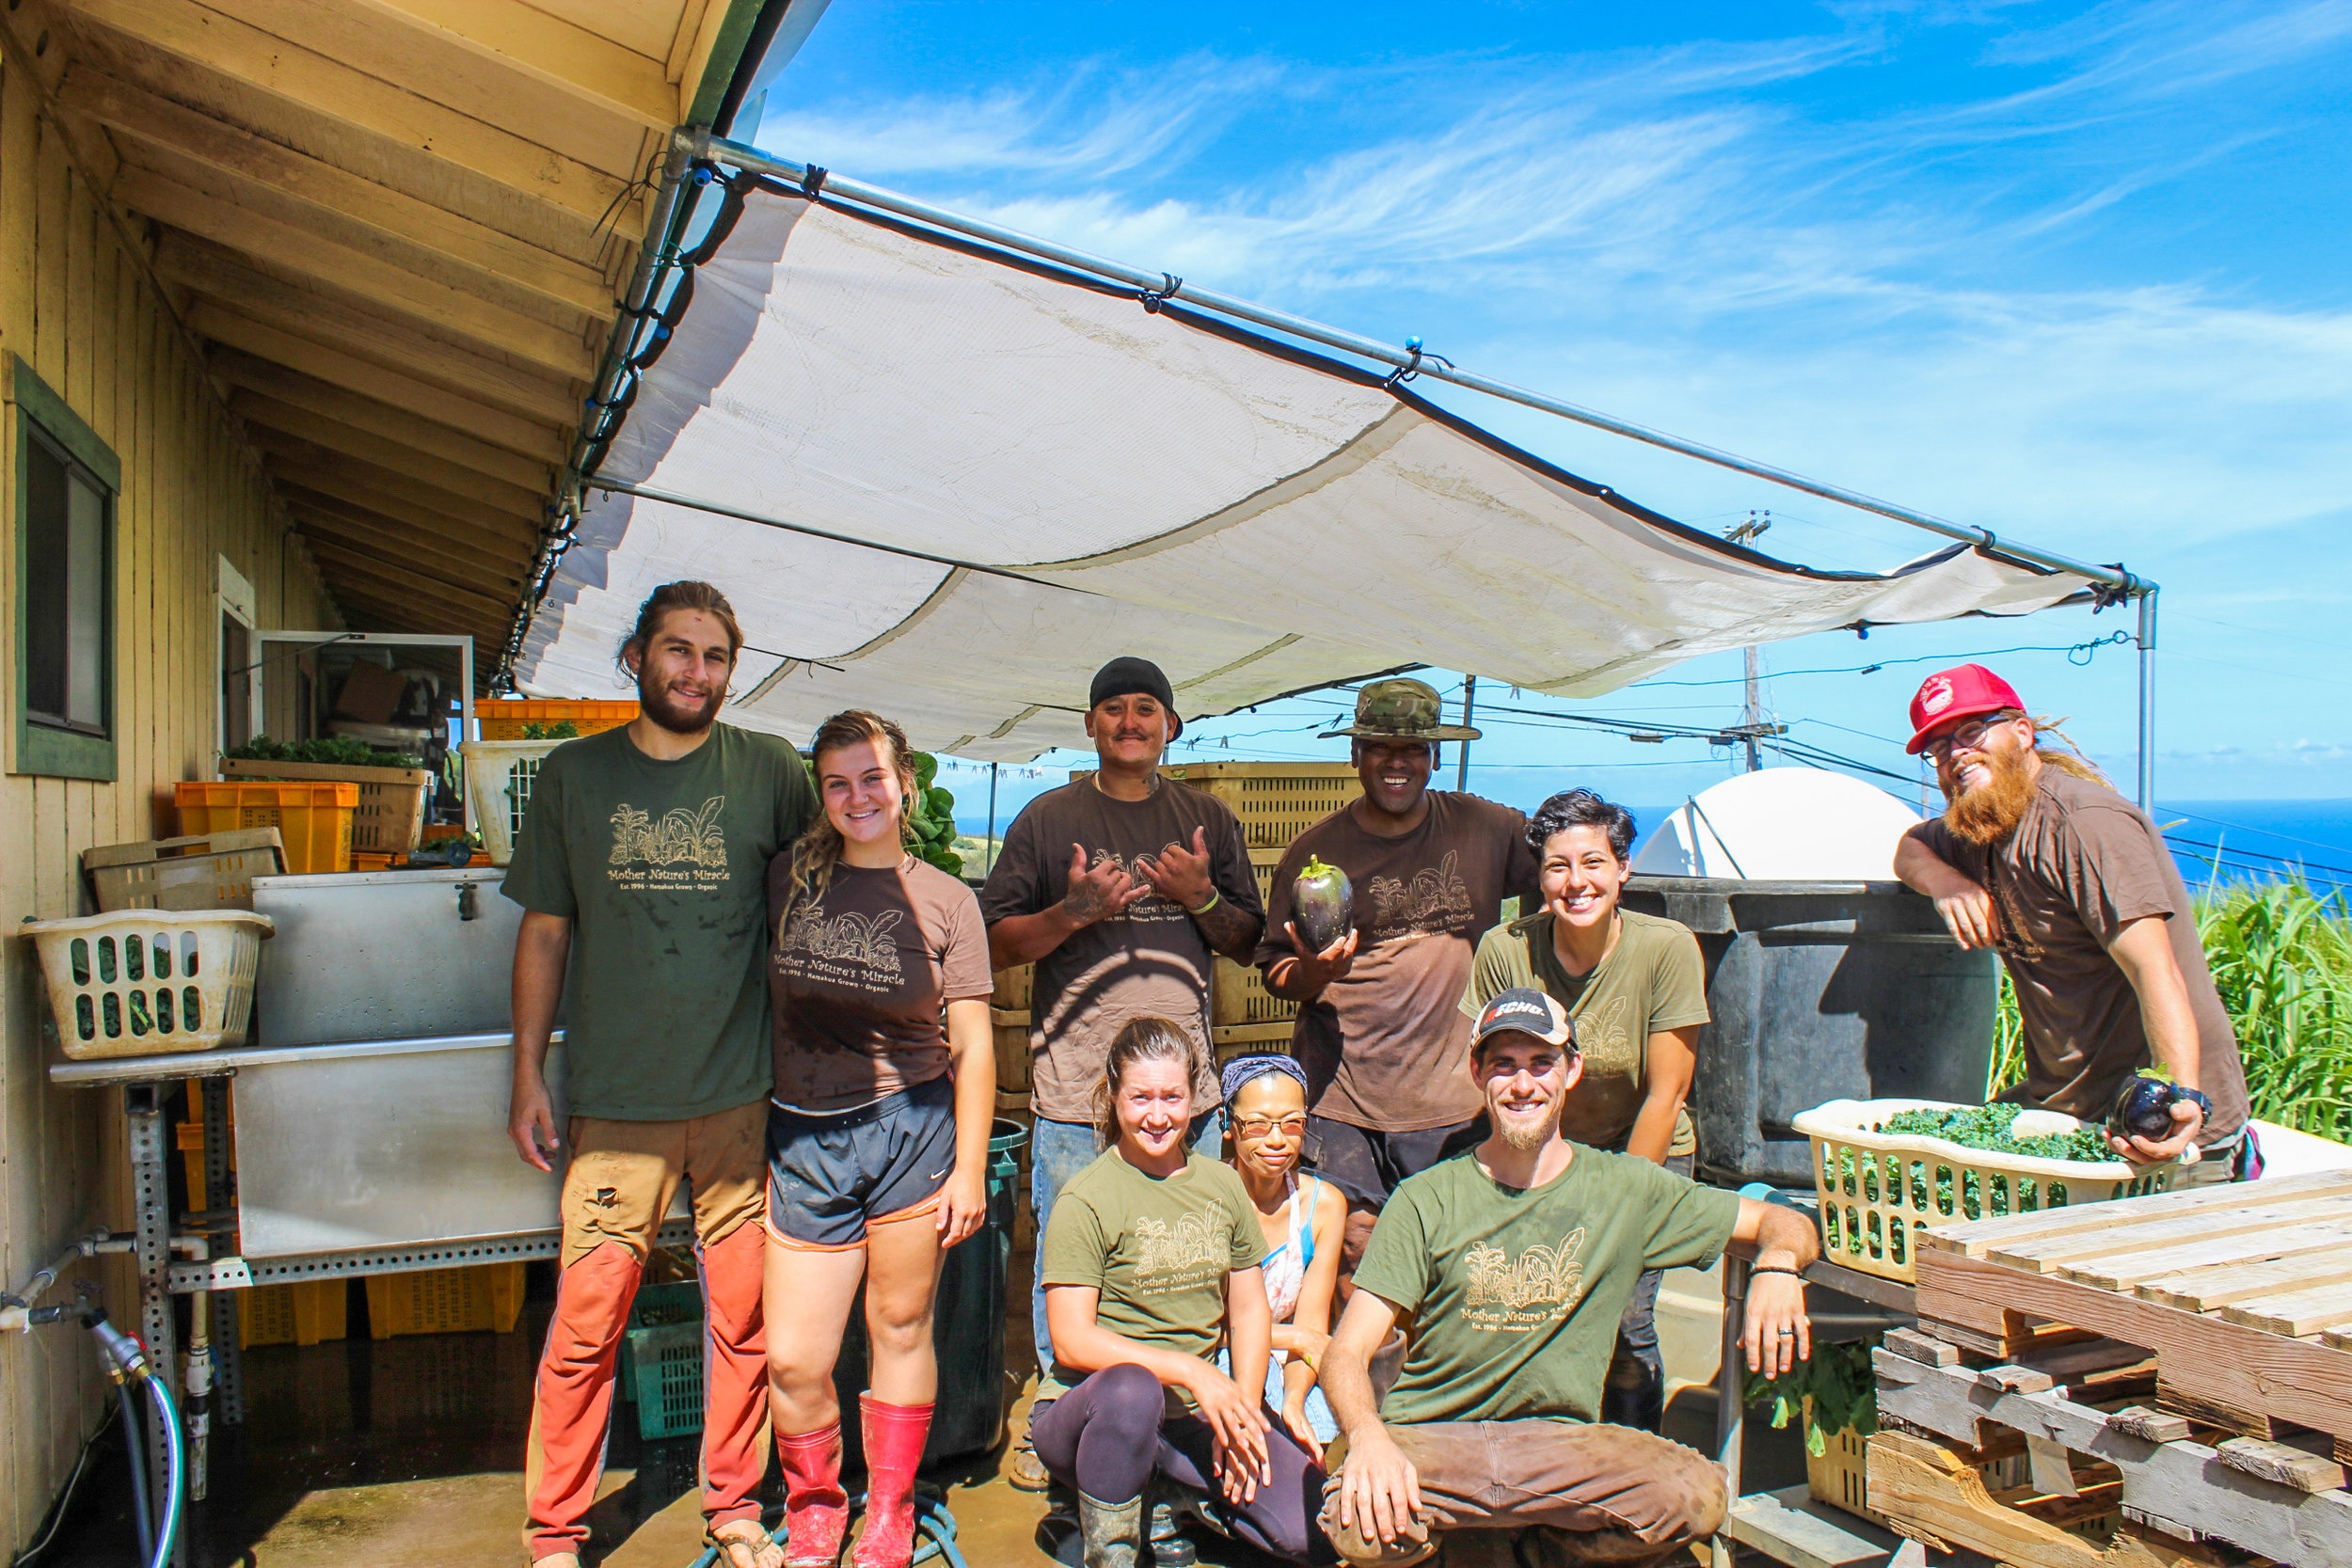 Mother Nature's Miracle employees on harvest day (L-R): Dain, Jacki, Royden, Kelsey, Kiyoko, Alfred, Nick, Brandy, Brandon